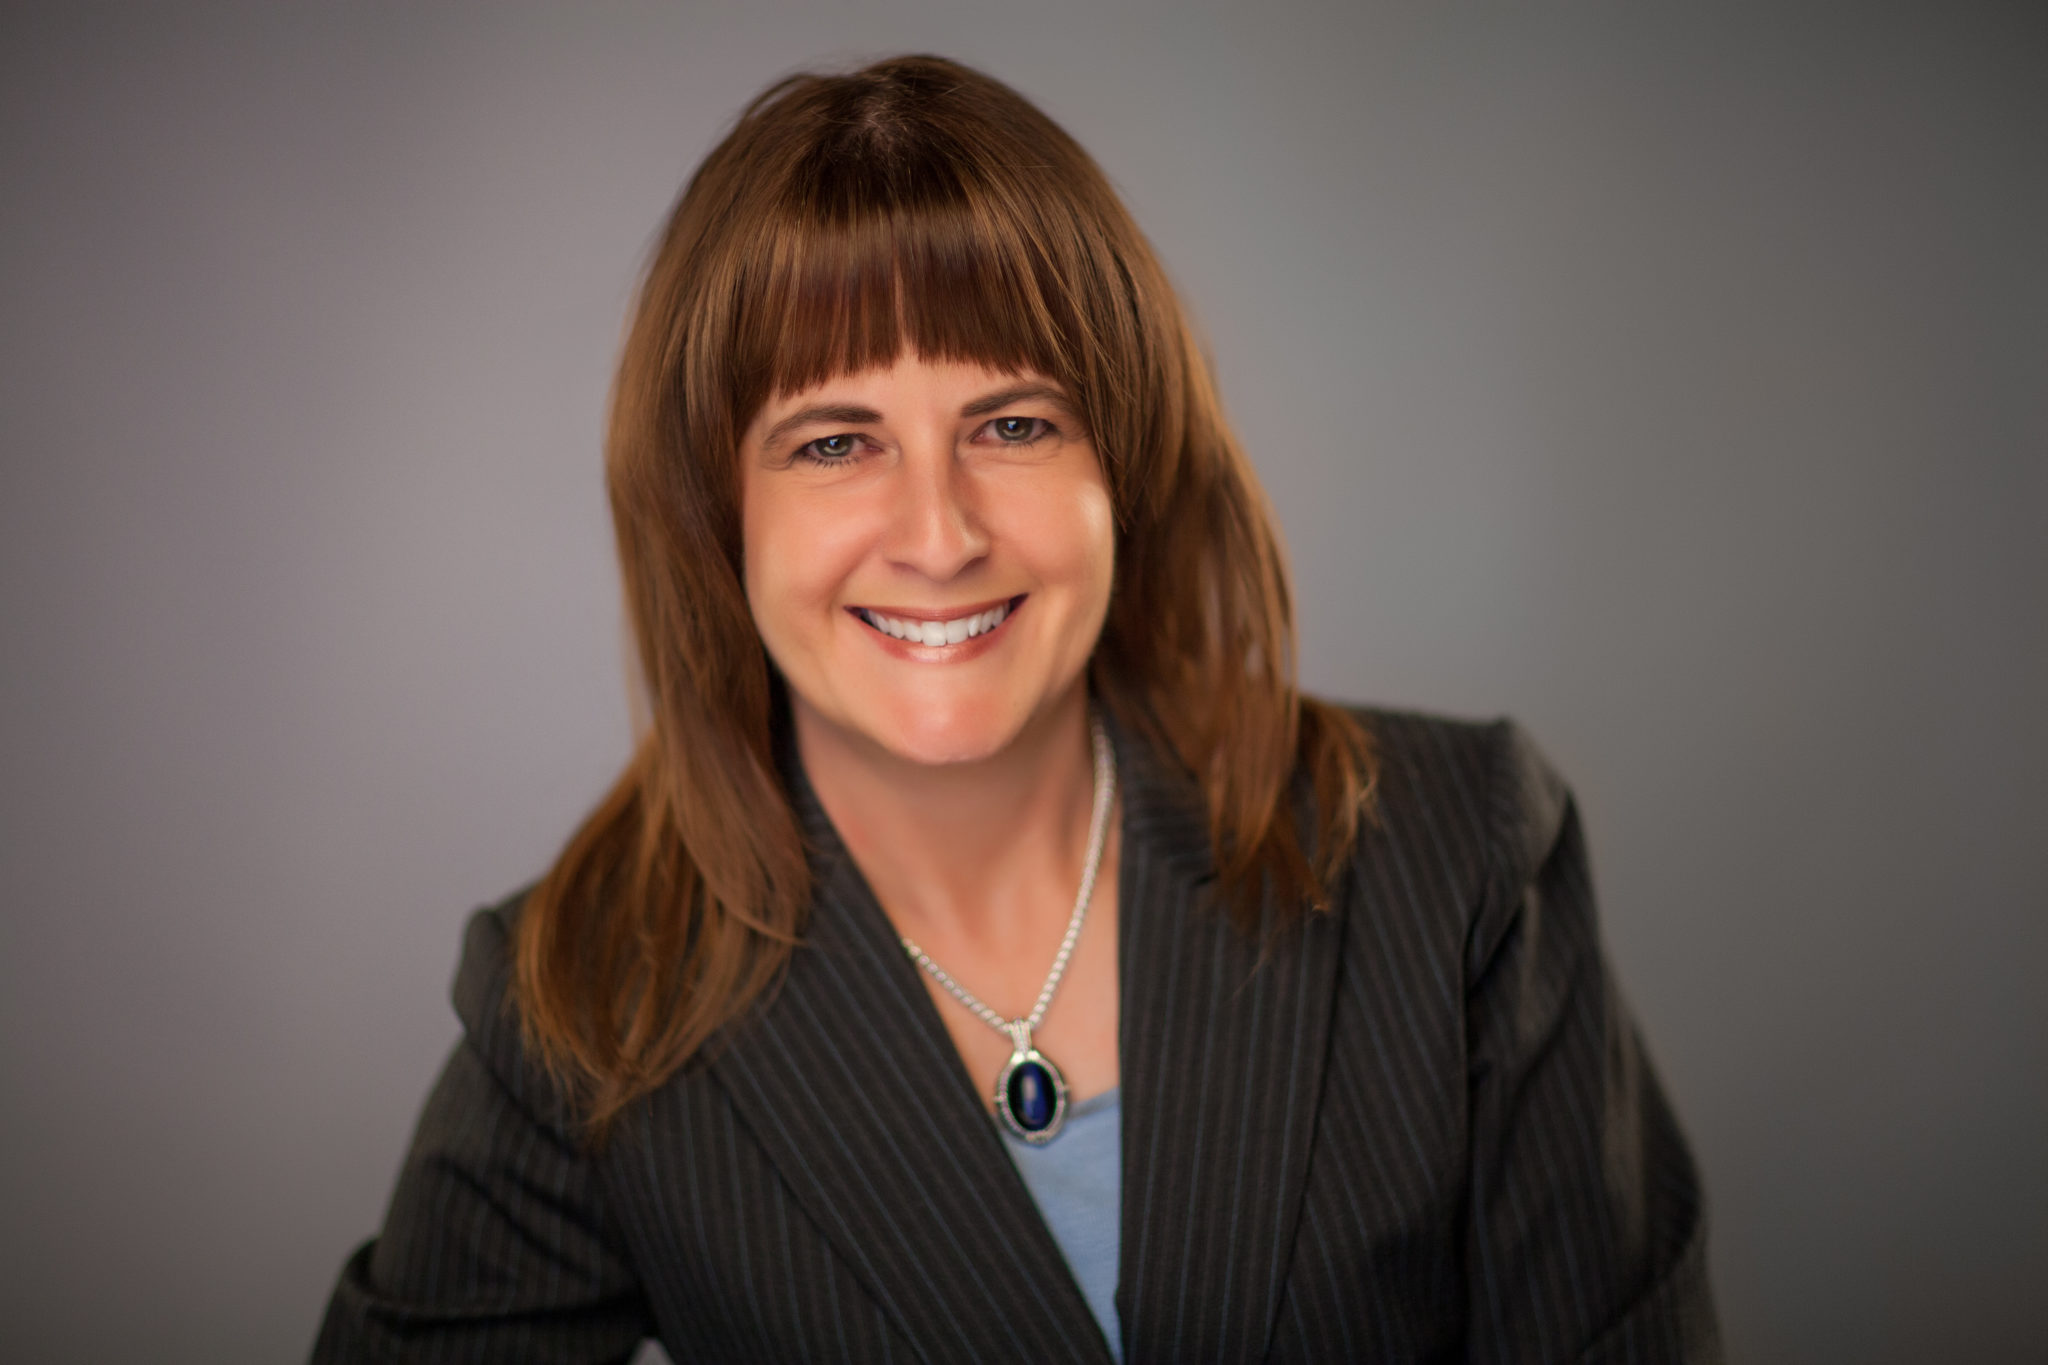 Chief People Officer Rhonda Flanigan